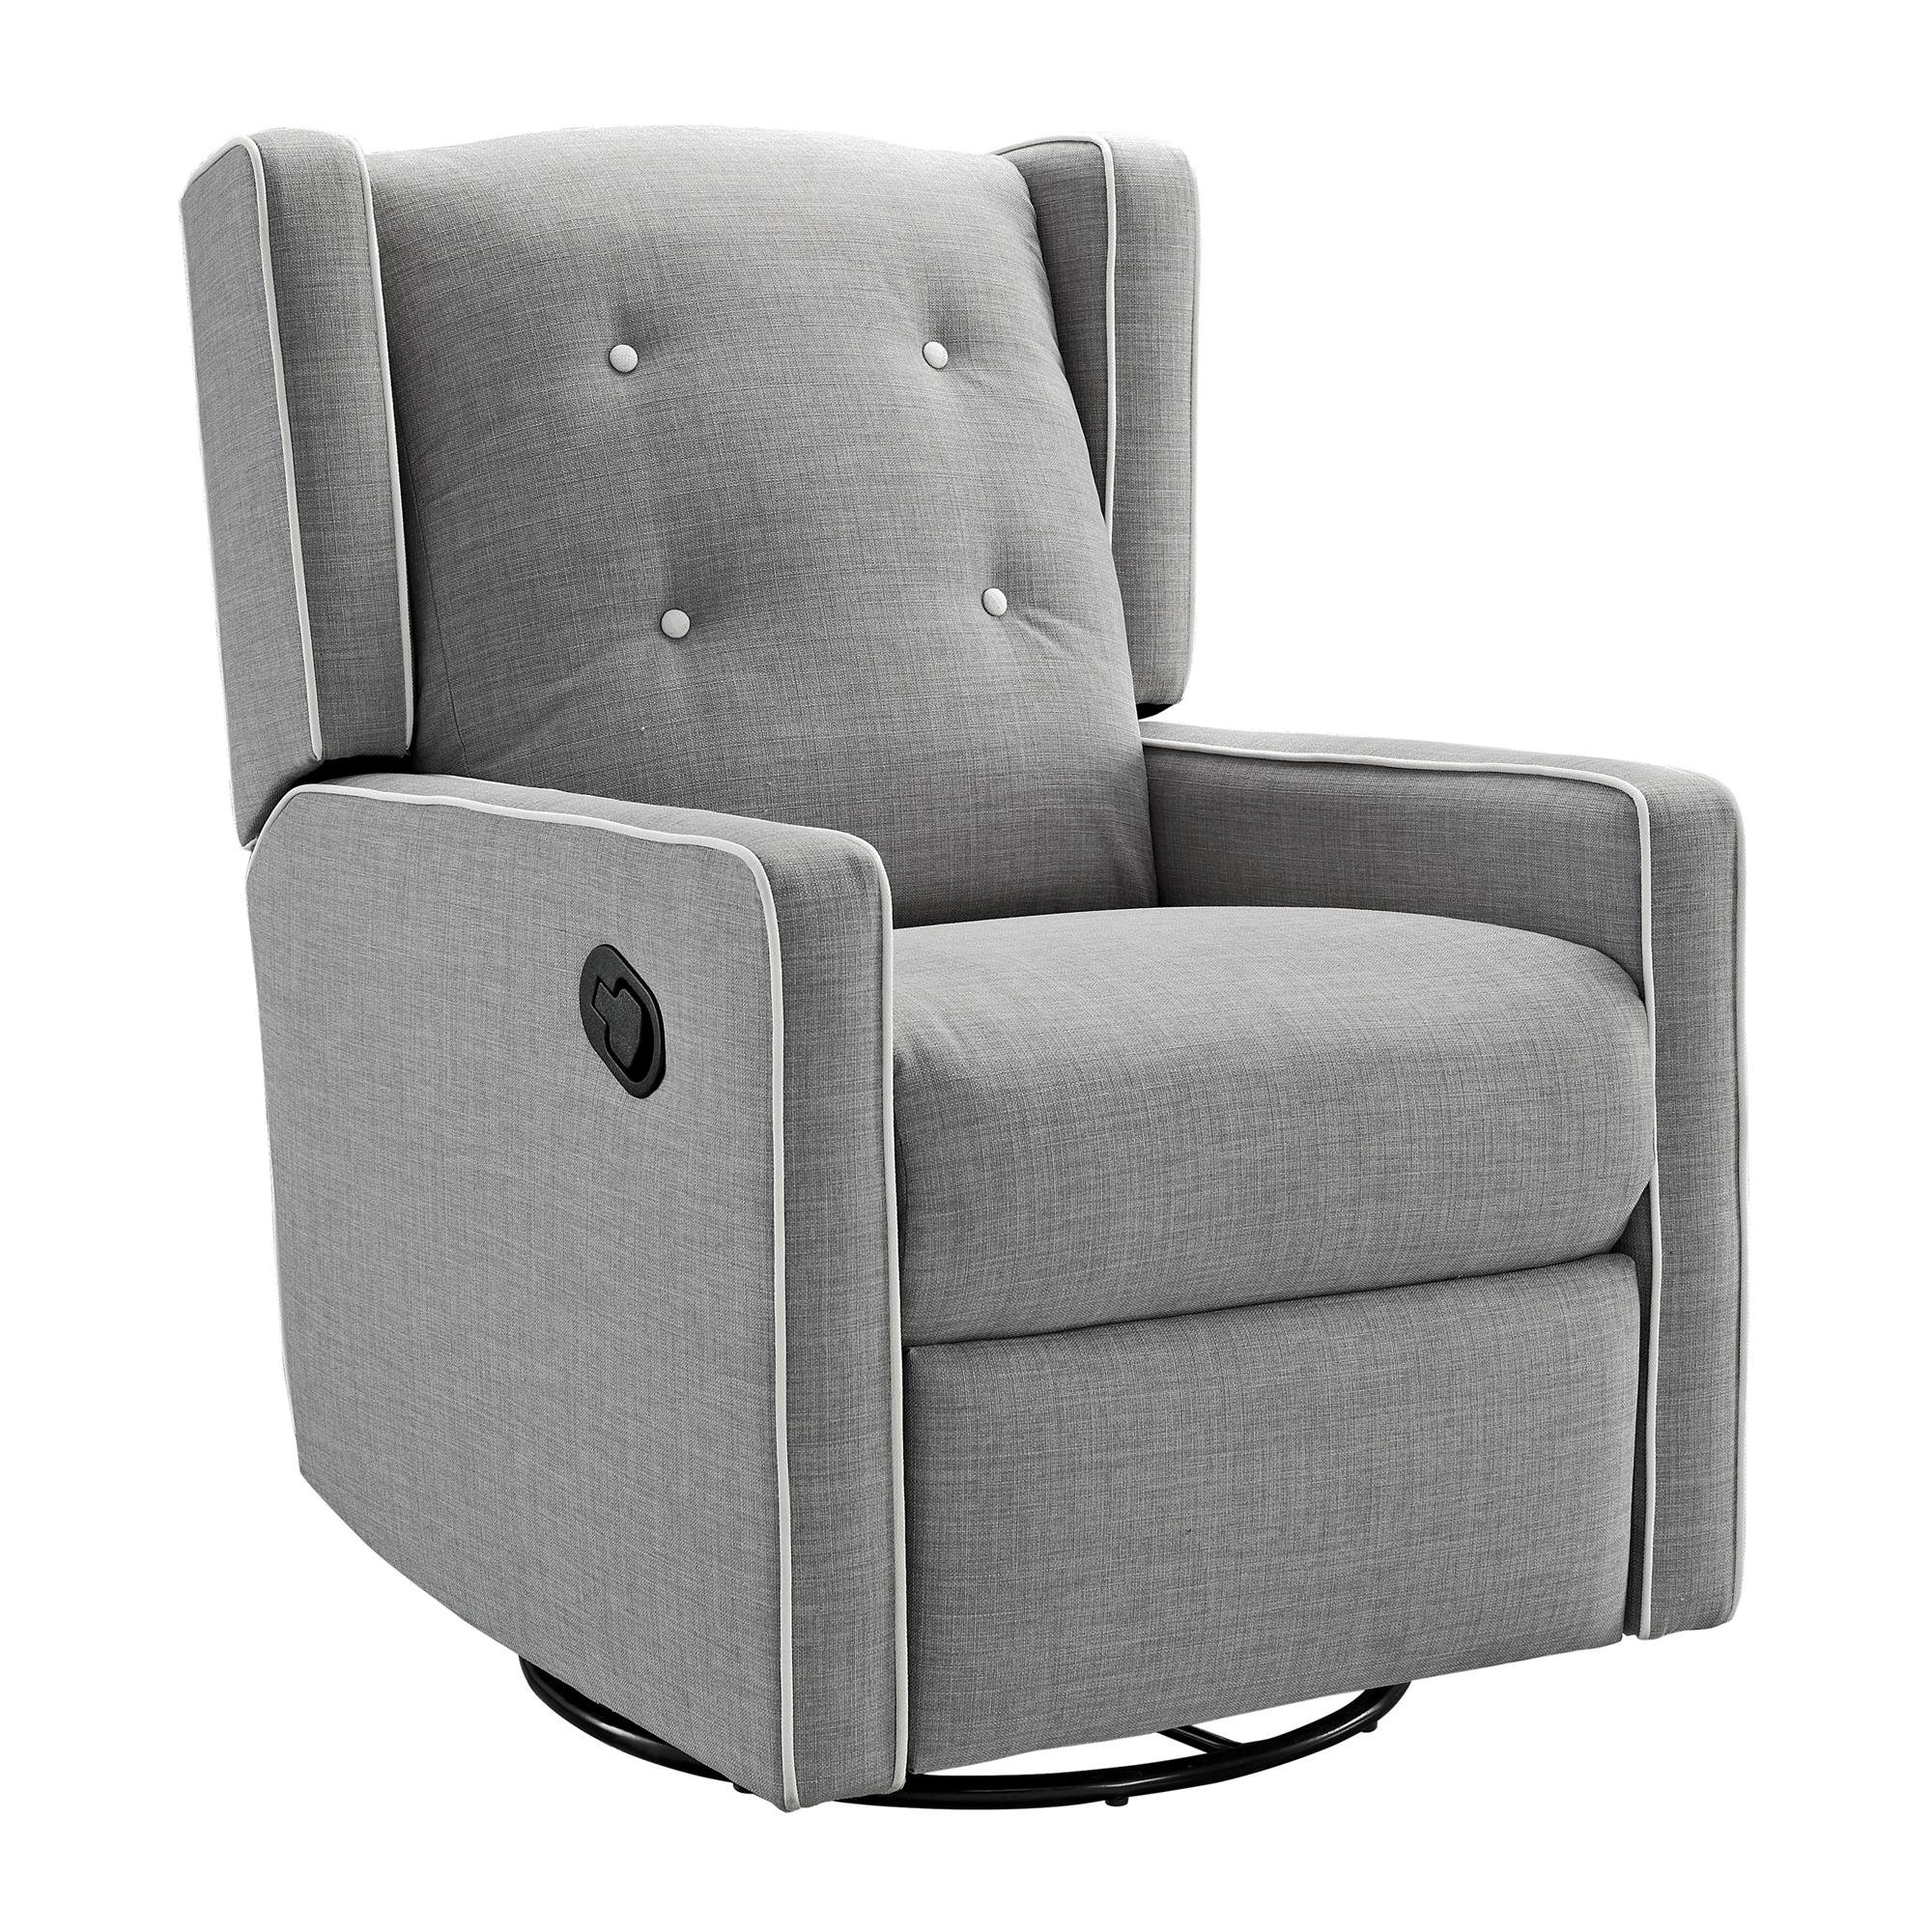 Viv + Rae | Allmodern With Regard To Circuit Swivel Accent Chairs (Image 18 of 20)